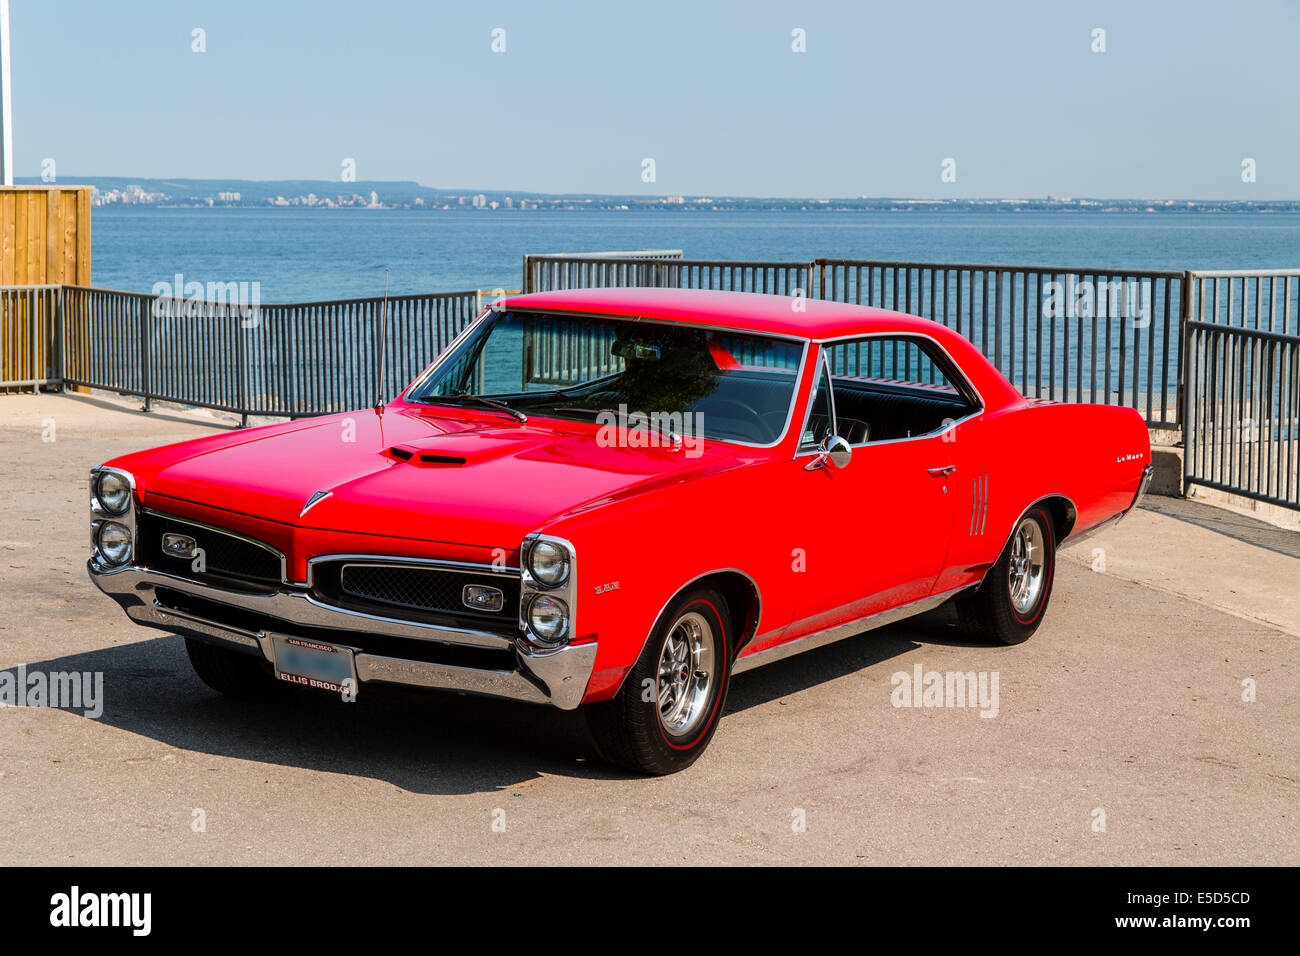 hight resolution of 1967 pontiac lemans coupe stock image